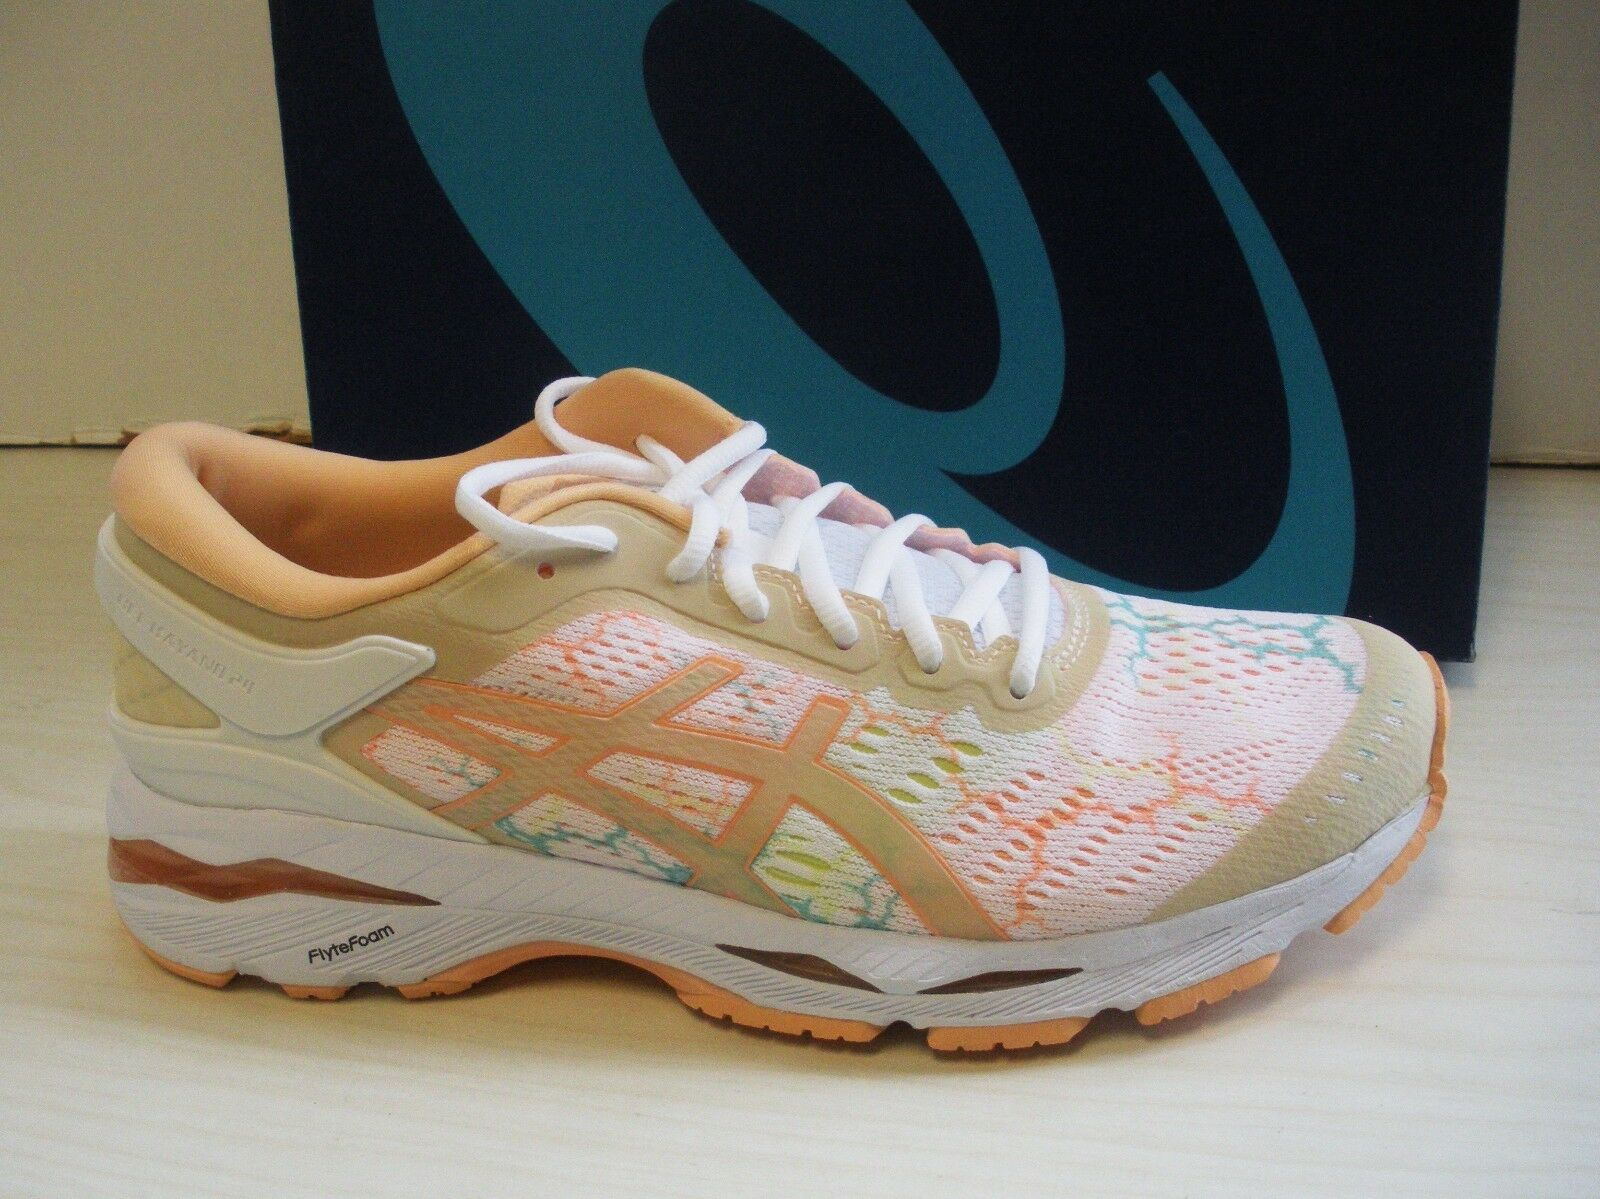 ASICS WOMENS GEL-KAYANO 24 LITE-SHOW RUNNING SNEAKERS-SHOES-T9A0M-0101-WHITE/APR Seasonal clearance sale